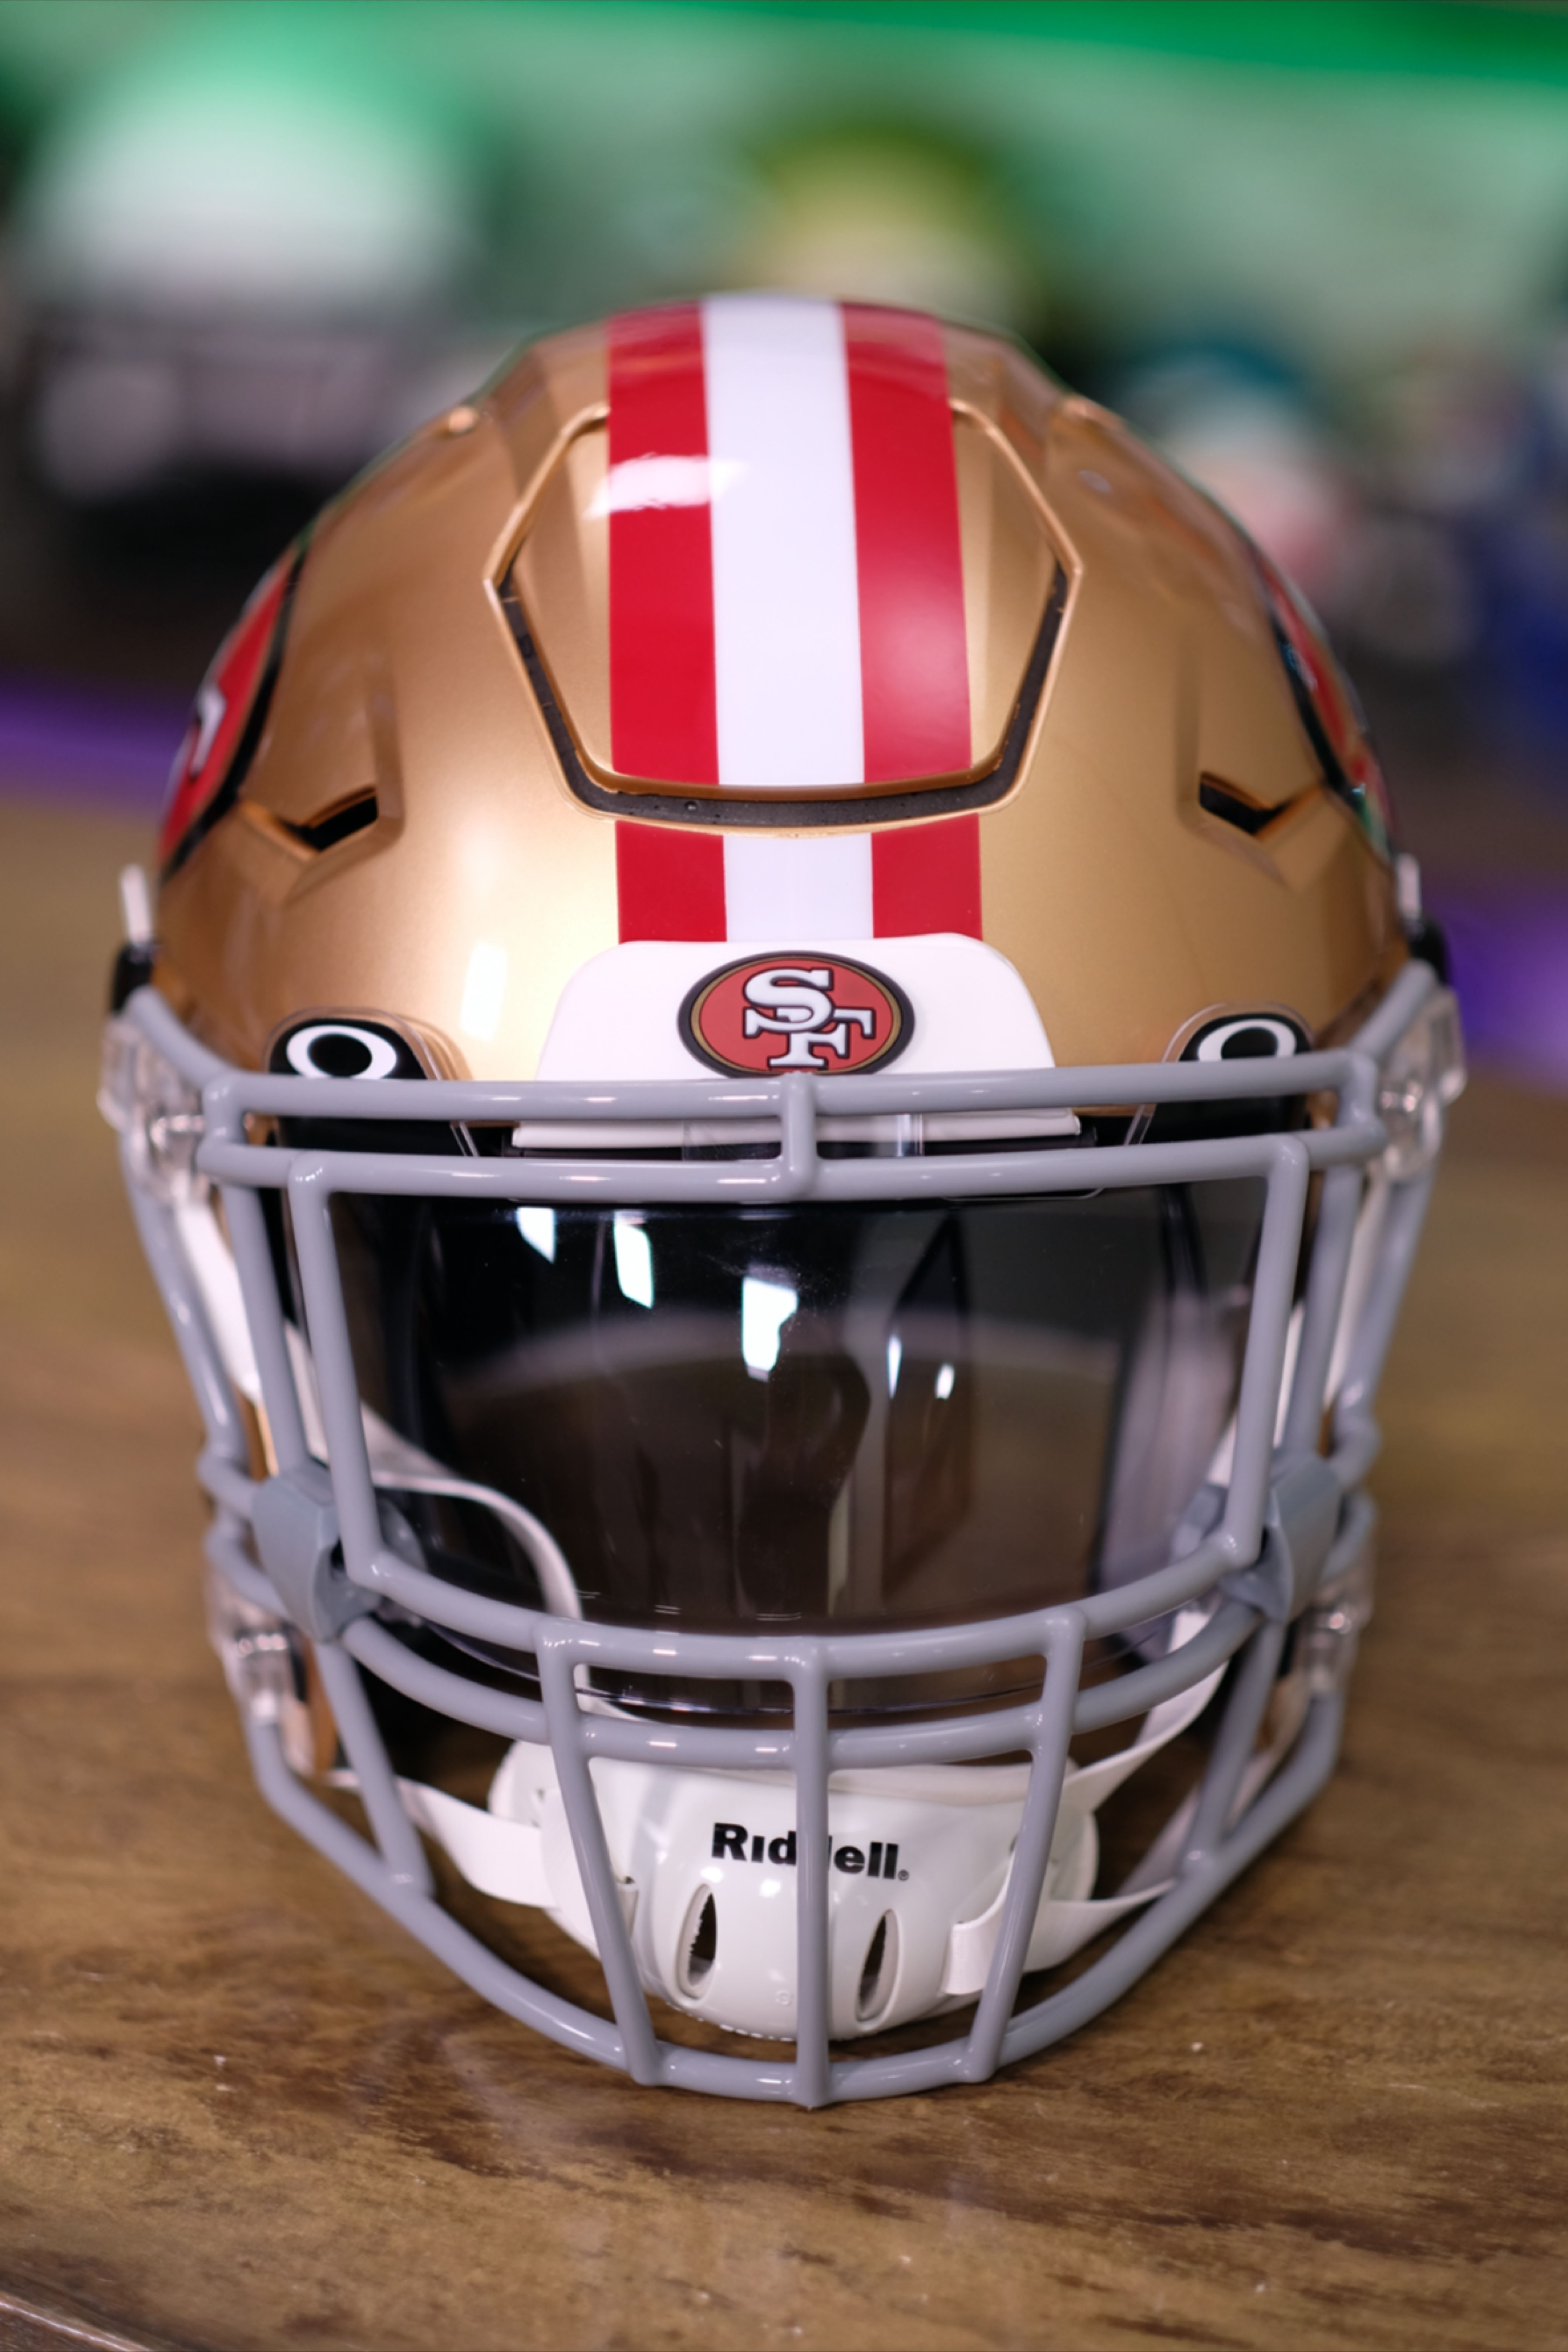 San Francisco 49ers Build For A Customer In 2020 Football Helmets Custom Football Football